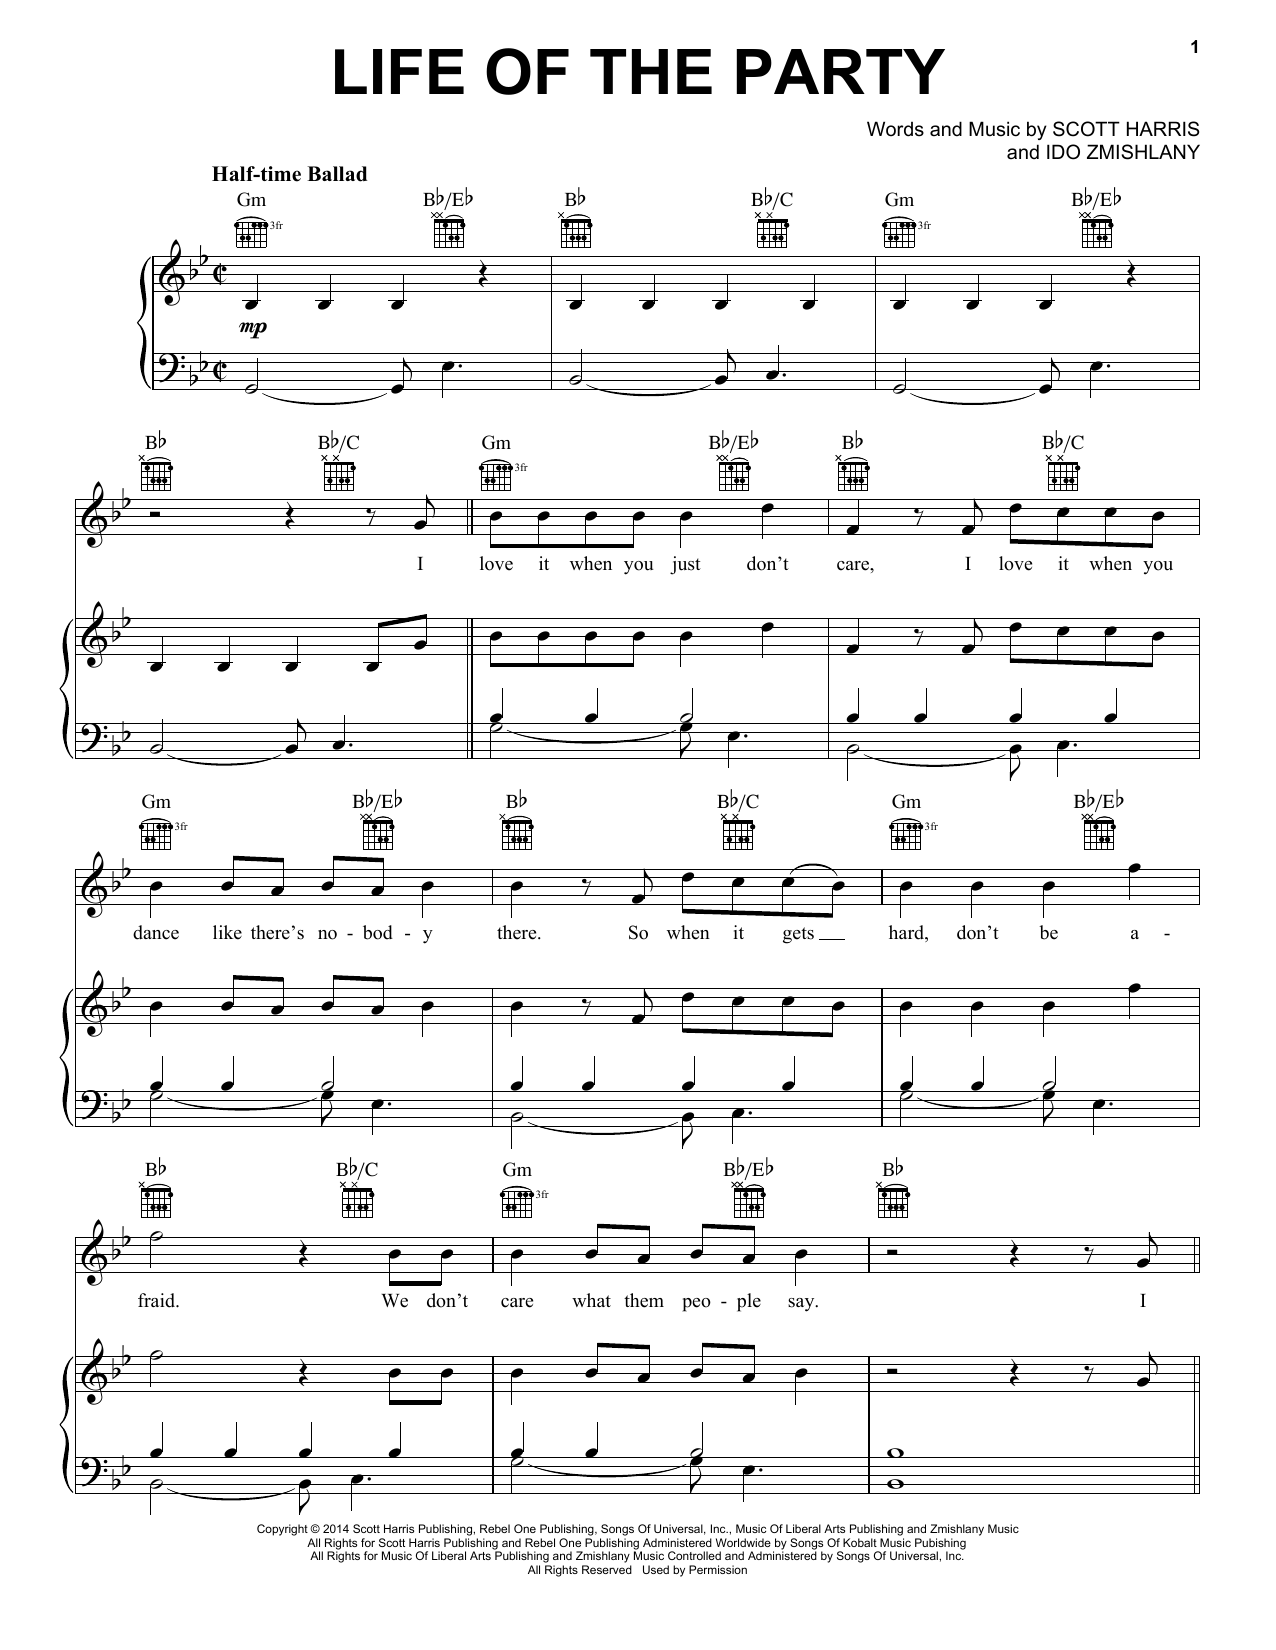 Shawn Mendes Life Of The Party sheet music notes and chords. Download Printable PDF.